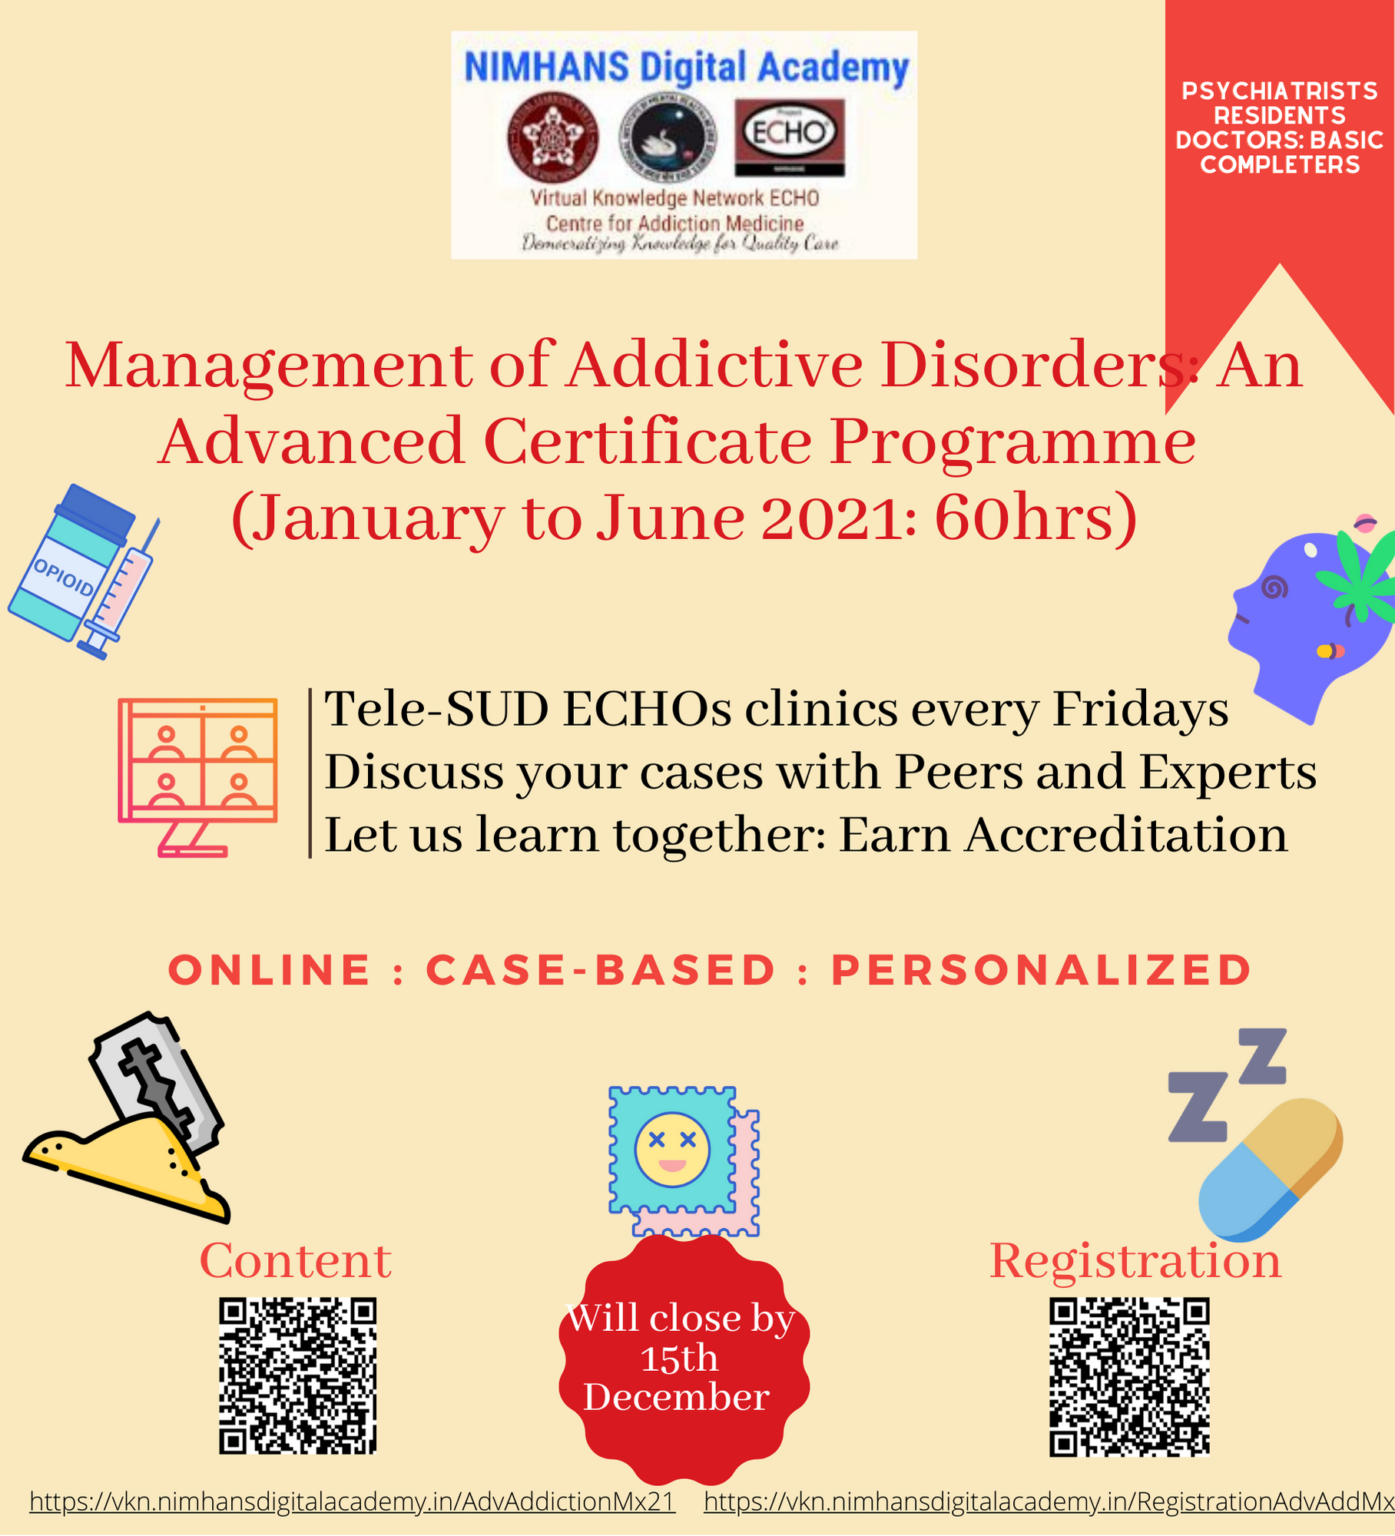 Completed: Advanced Certificate Course In Management Of Addictive Disorder Jan-July 2021